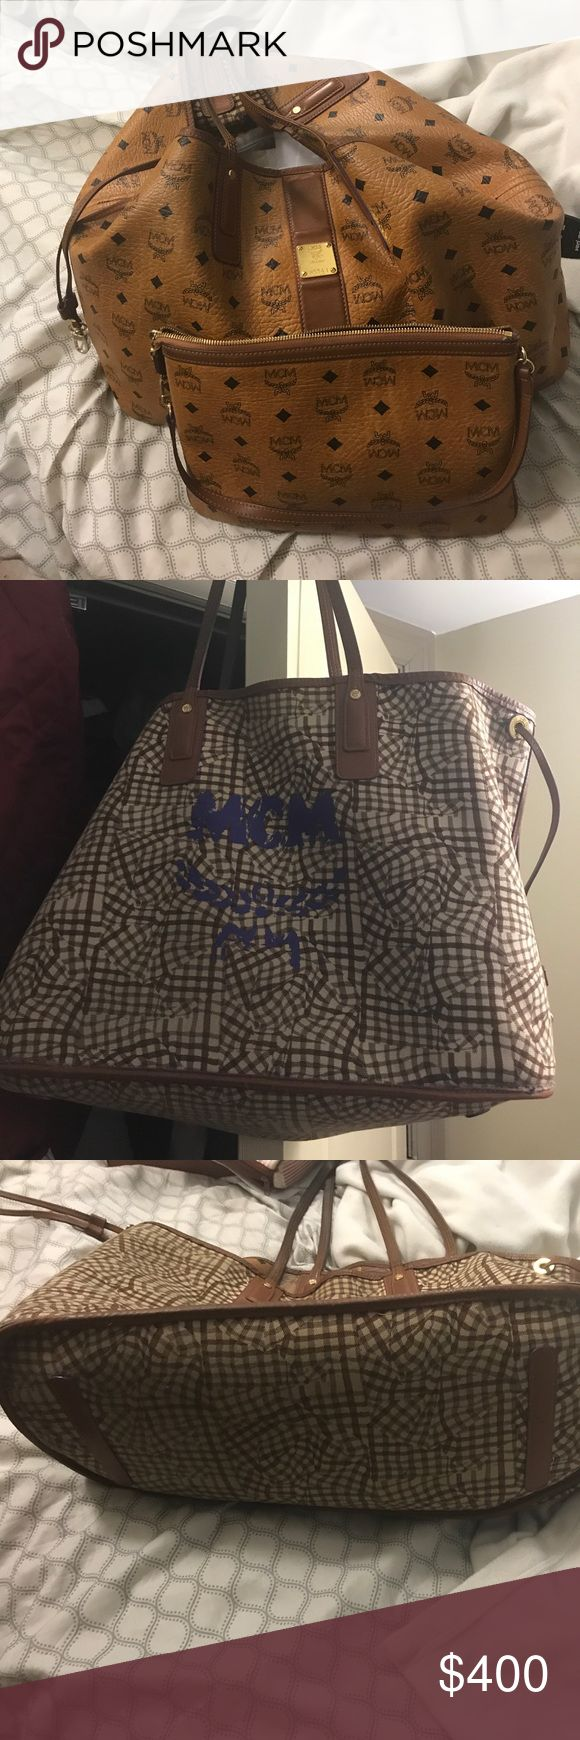 MCM XL MCM XL and clutch  had it for 4 years comes with dust bag and verification and tags original price was $580 plus tax MCM Bags Totes